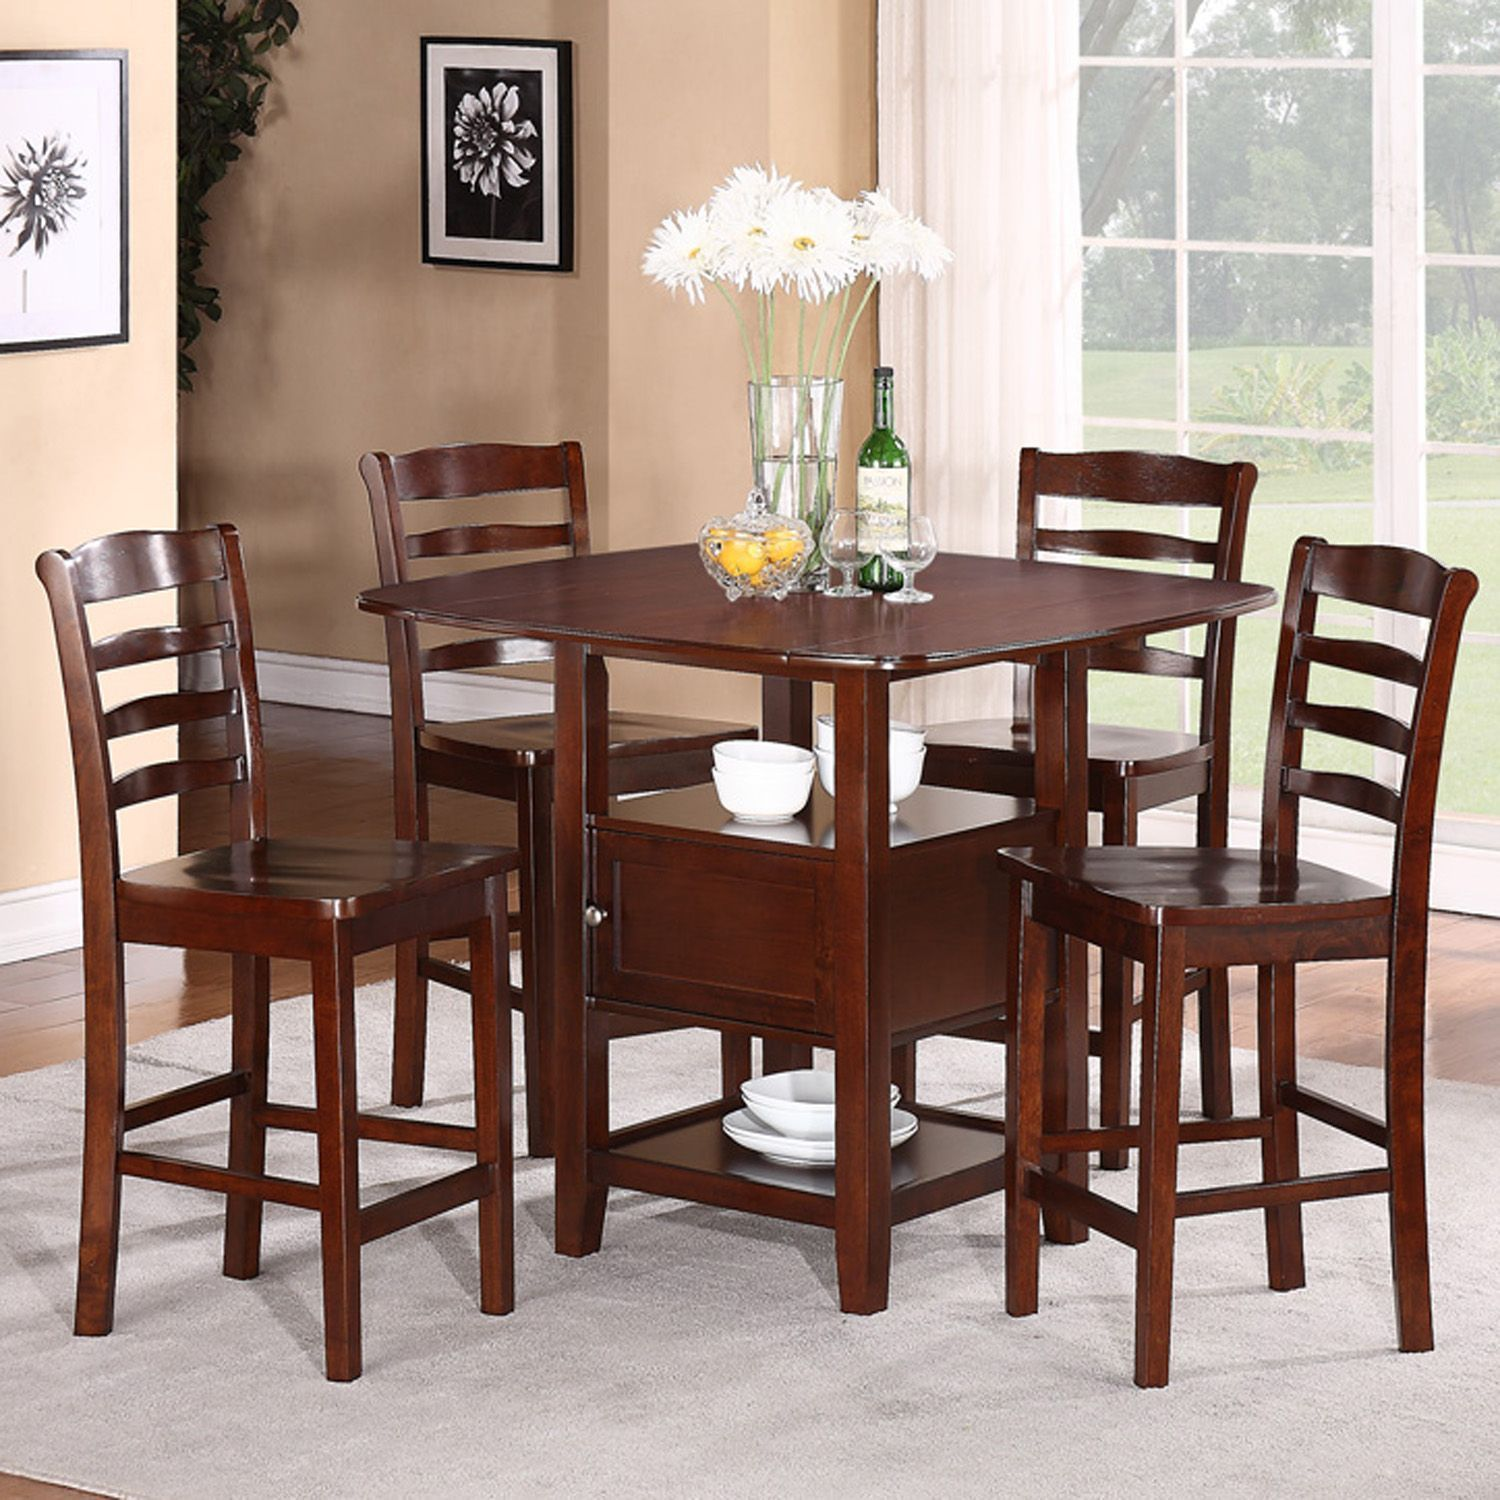 Choosing The Right Modern Kitchen Table Sets With Storage For An